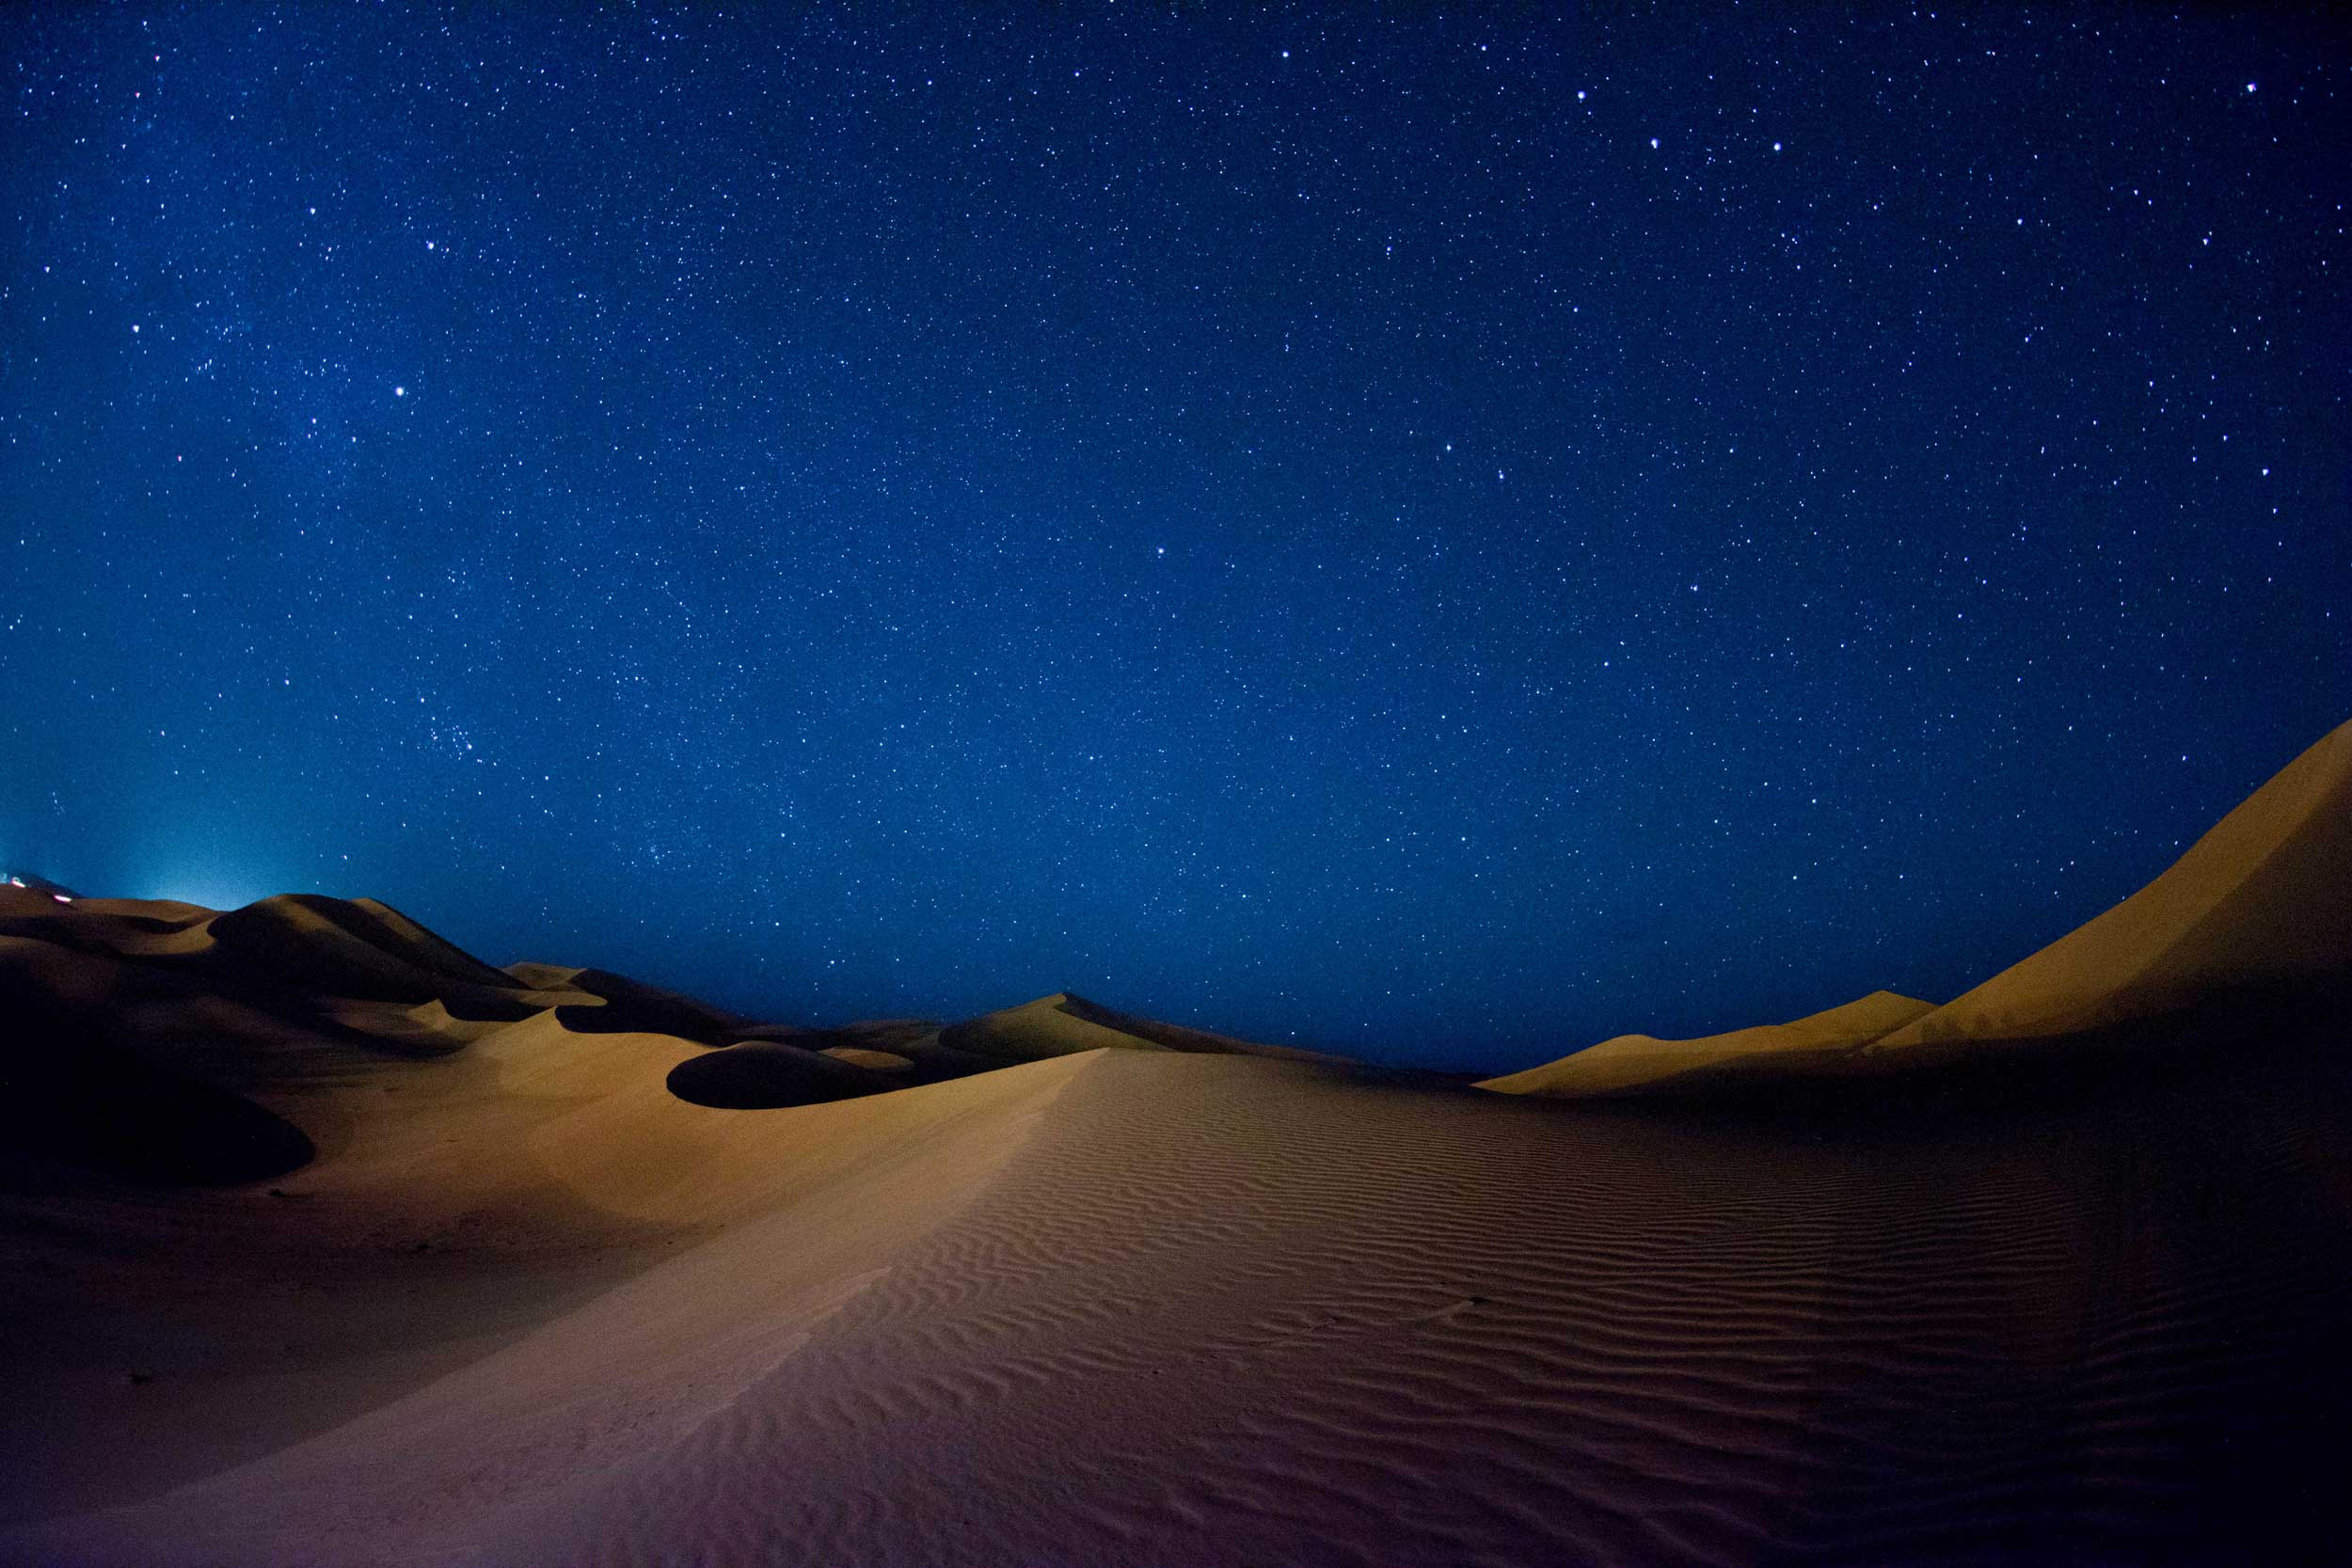 A view of the dunes and a starry, deep blue sky at the Merzouga Desert, Sahara